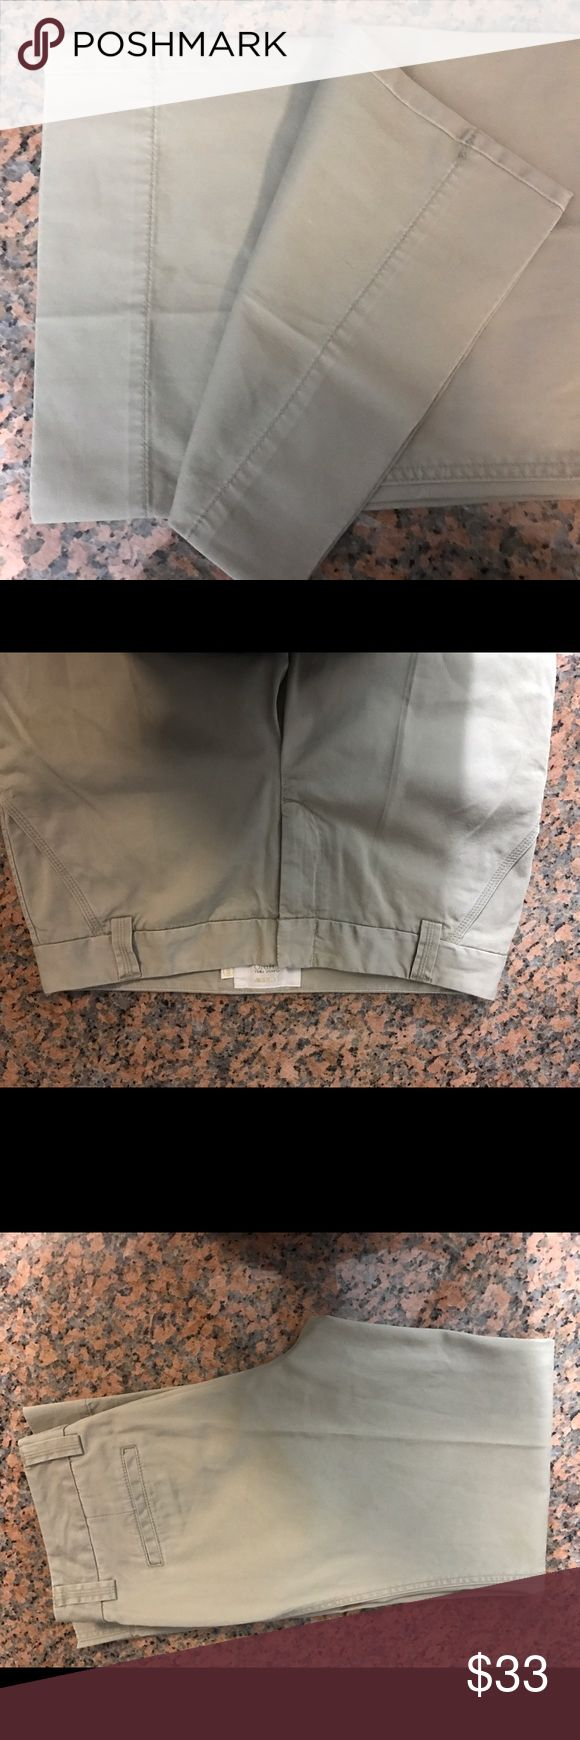 Women's J. Crew chinos 12r Nice khakis chino for women by J. Crew no tears or blemishes J. Crew Pants